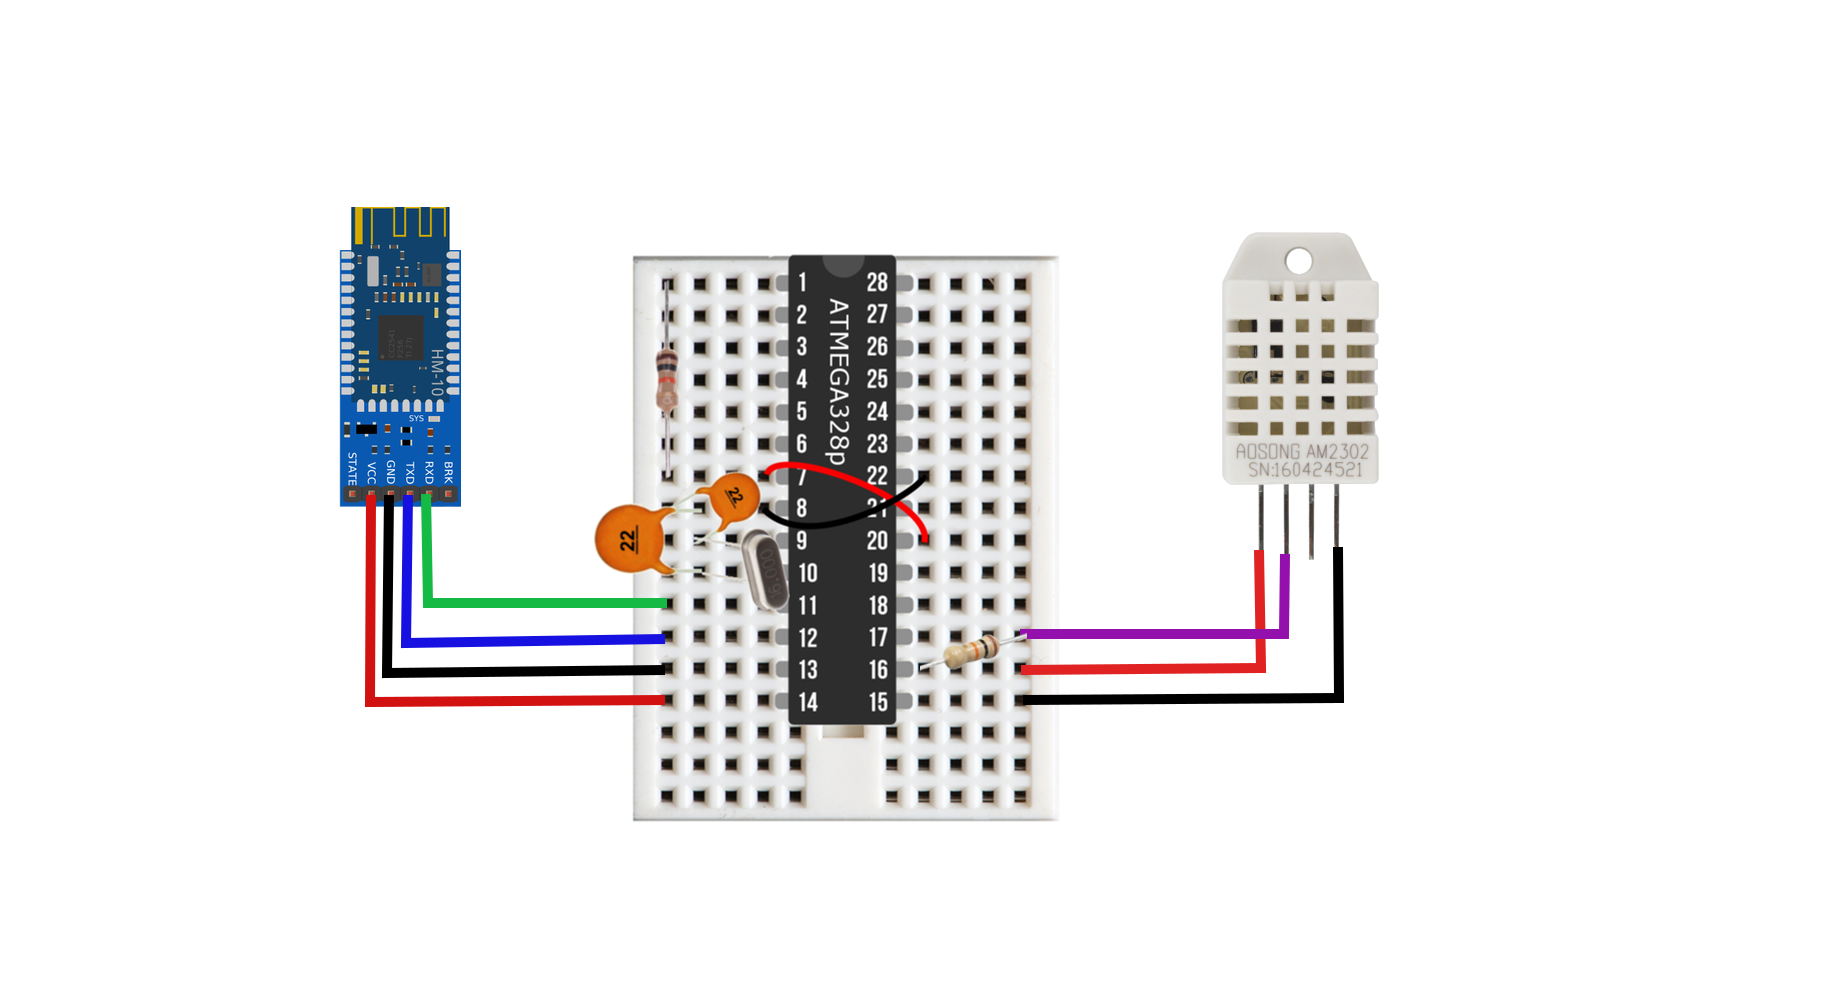 Wiring diagram for the breadboard Arduino DHT22 Bluetooth node. With this wiring configuration, the node is capable of sleeping at micro-amp currents, reading temperature data, and then transmitting it via Bluetooth. Hm-10 module drawing was found  here  at Arduibots.wordpress.com.